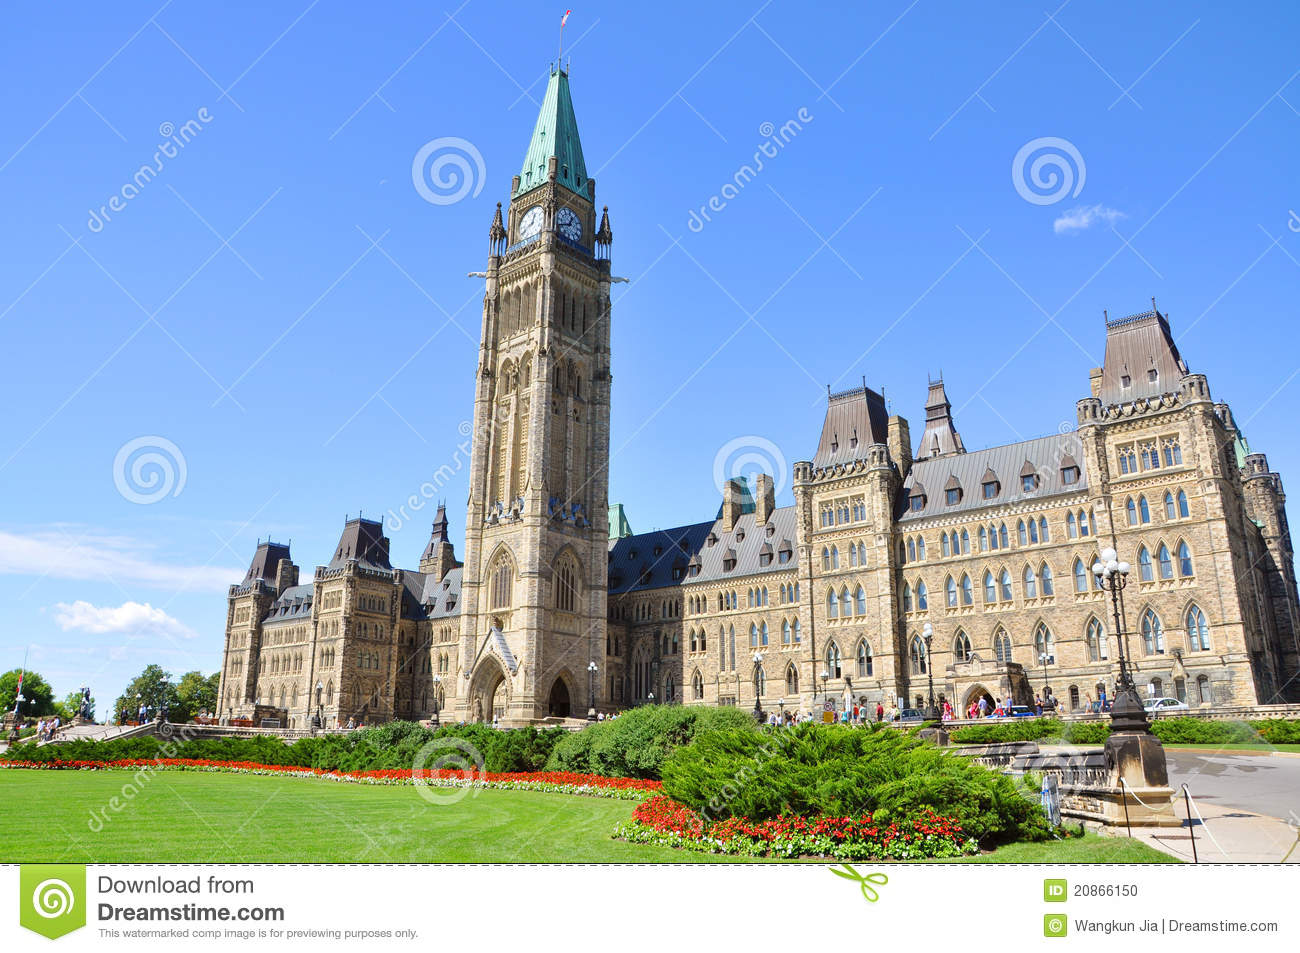 an introduction to the history of the canadian parliament Parliament of canada, the crown, the senate, and the house of commons of canada, which, according to the british north america act (constitution act) of 1867, are the institutions that together create canadian laws when parliament is referred to in some formal usages, all three institutions are included.